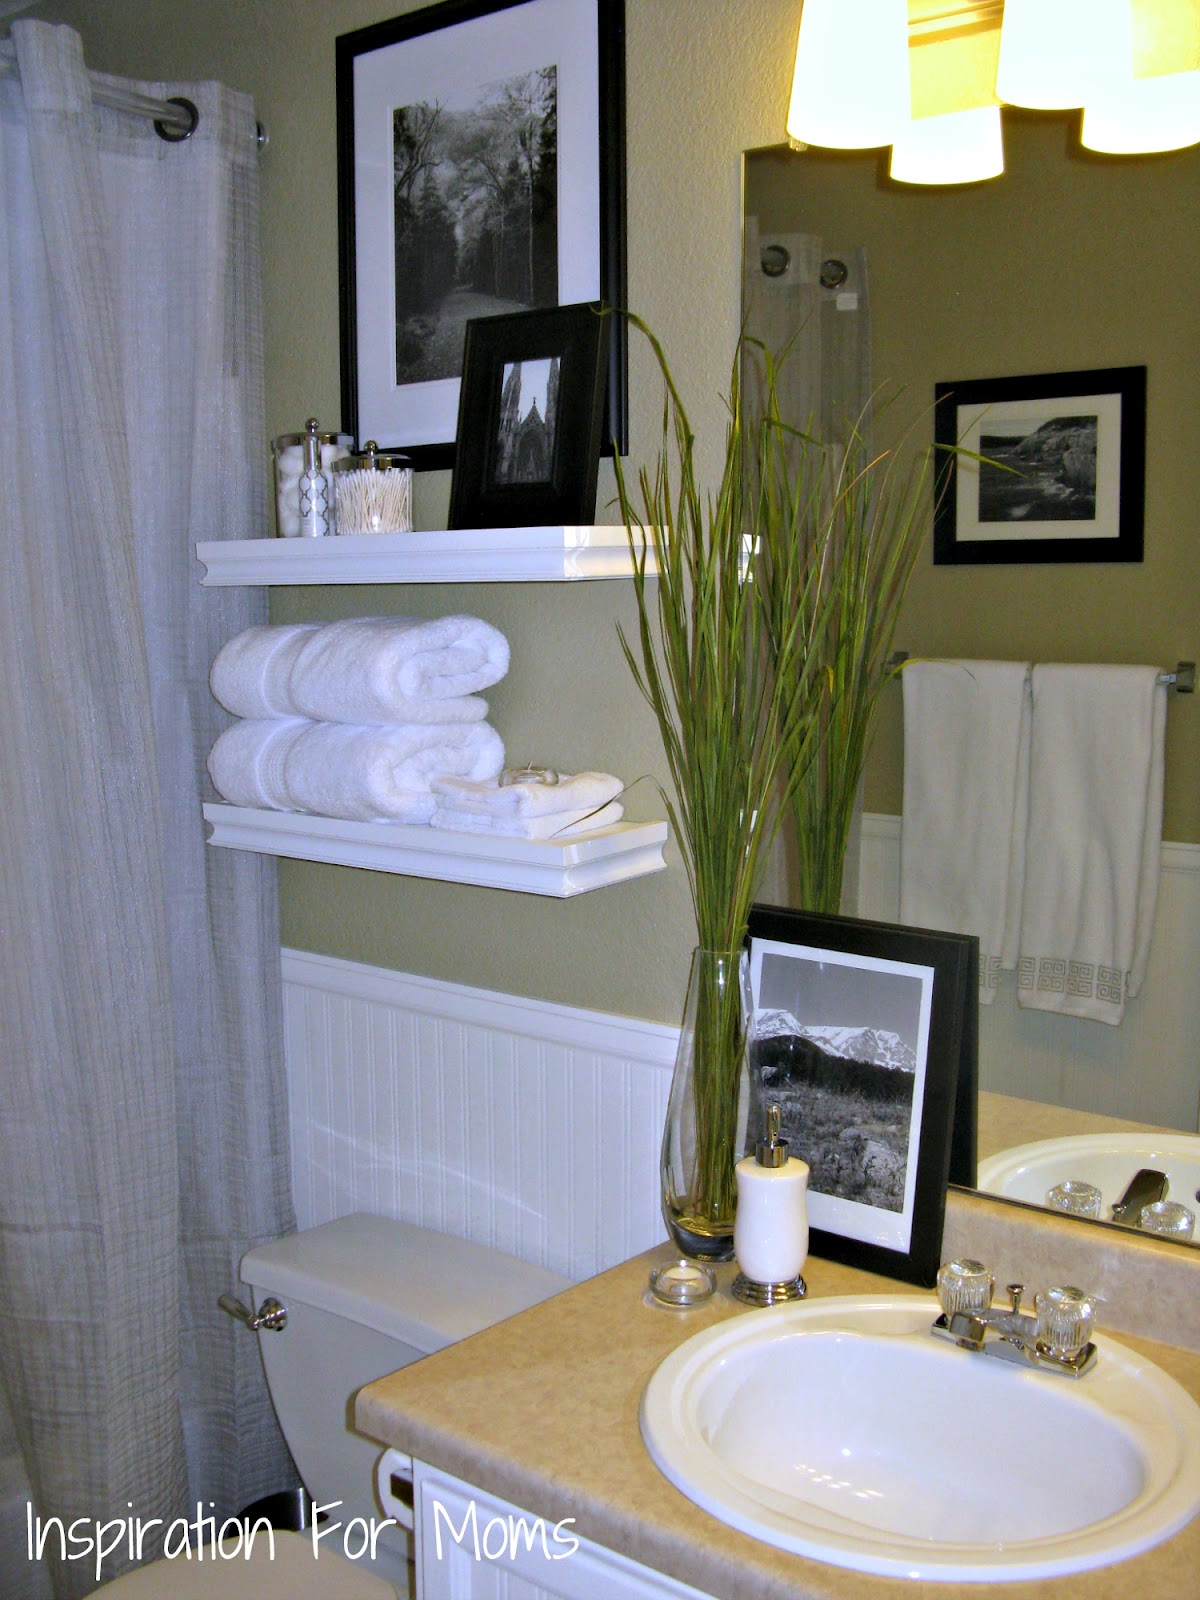 I finished it friday guest bathroom remodel inspiration for Photos of small bathrooms design ideas